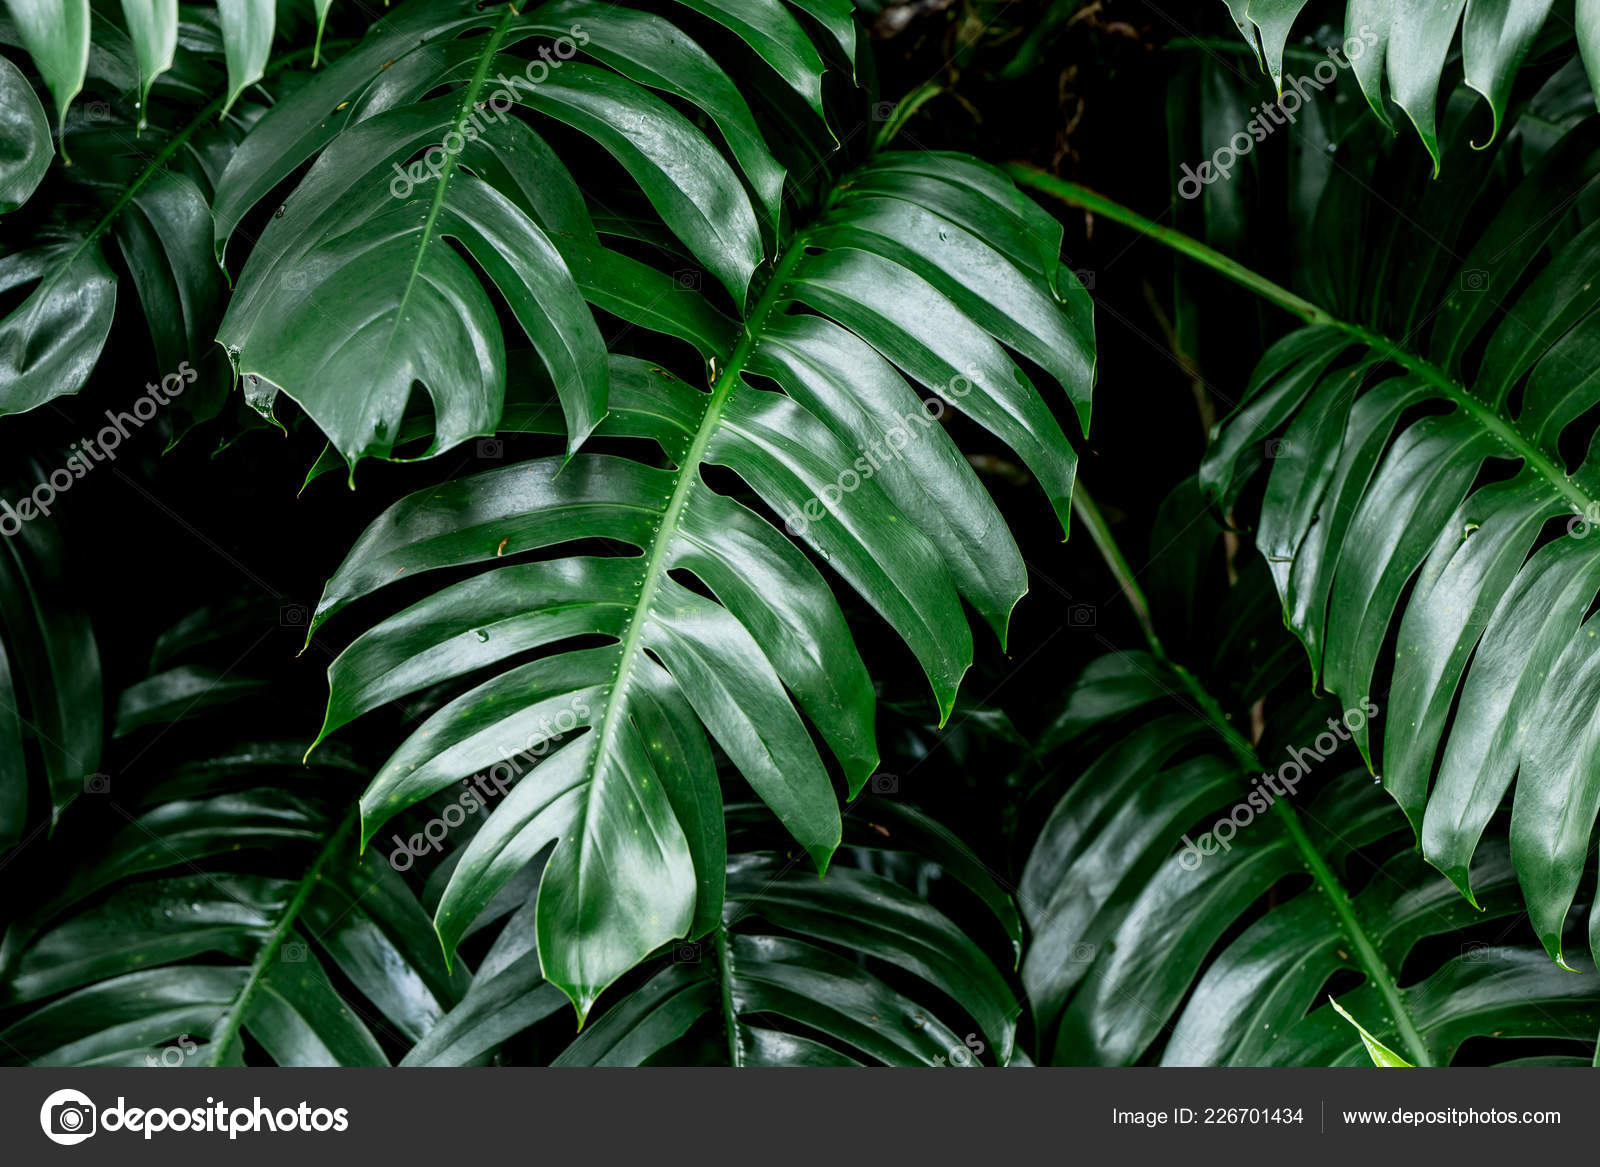 Tropical Deep Forest Leaves Jungle Leaves Green Plant Wet Rainforest Stock Photo C Coffeekai 226701434 A whopping 30 percent of the world's forests has been destroyed, while another 20 percent has been degraded (and most of the rest has been fragmented, leaving only. depositphotos